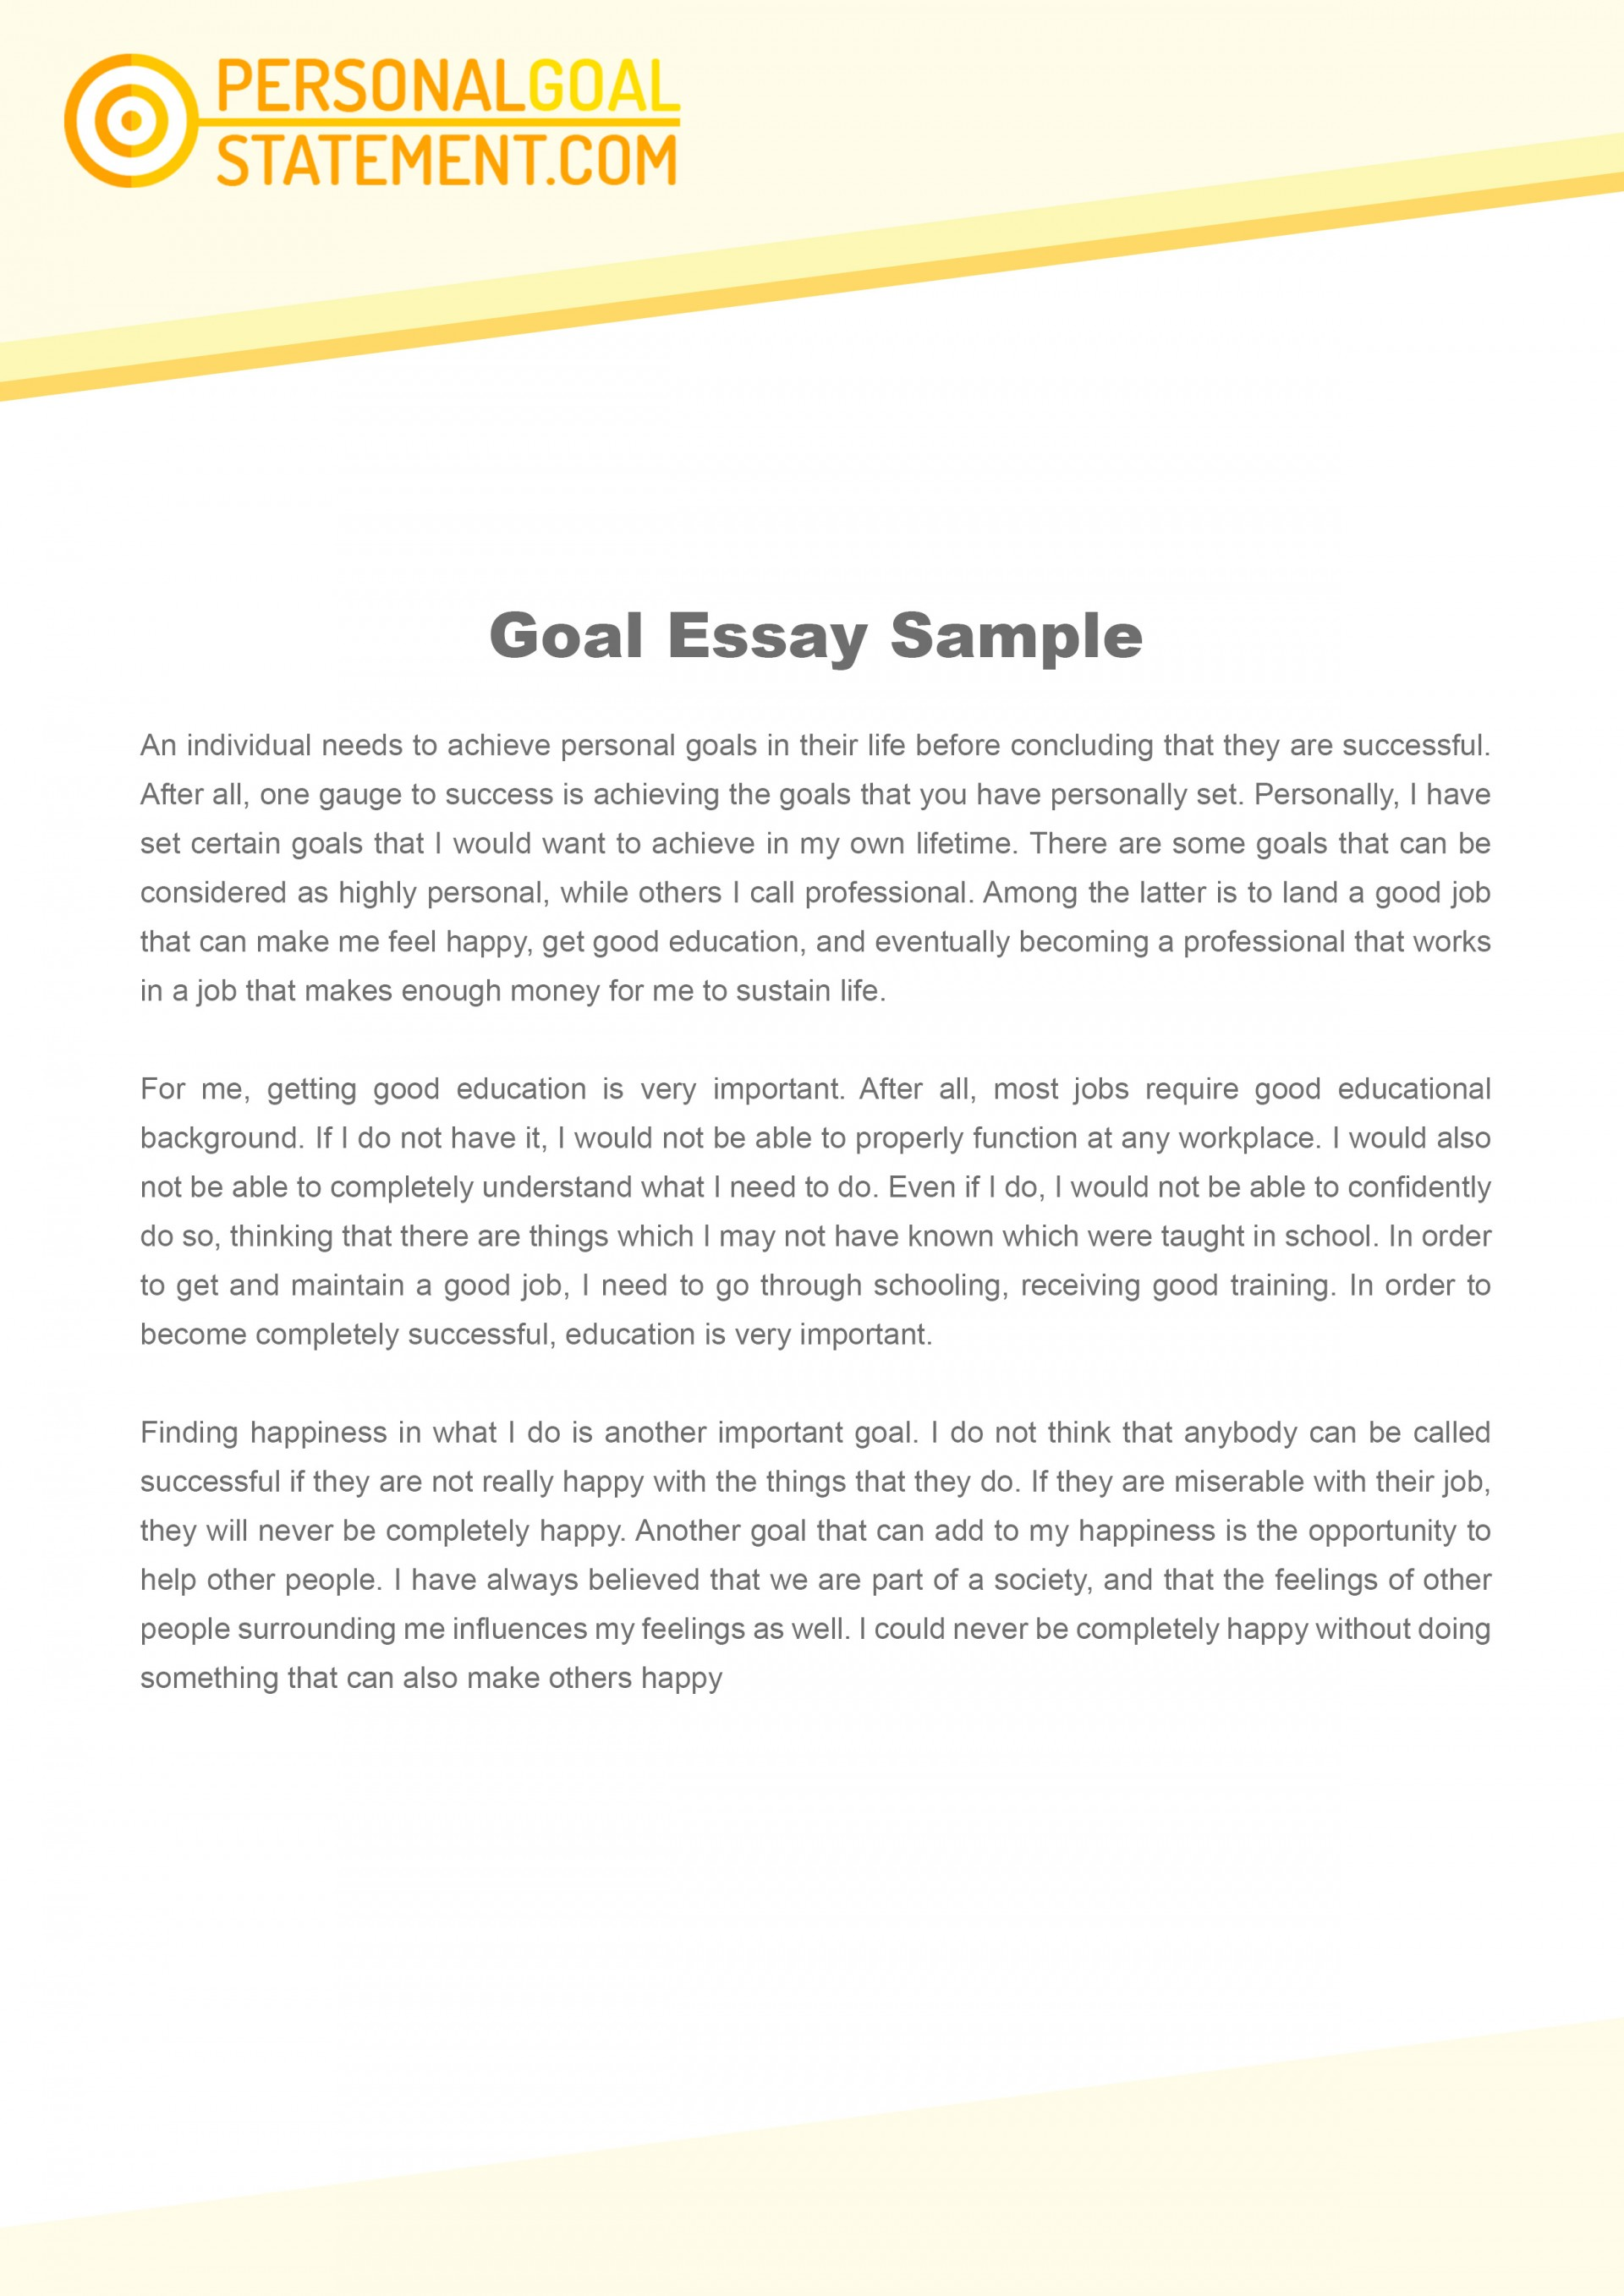 011 Essay Example Goals Career Goal Uniforms Debate Personal Examples L Awesome Sample Graduate School Future For College High 1920